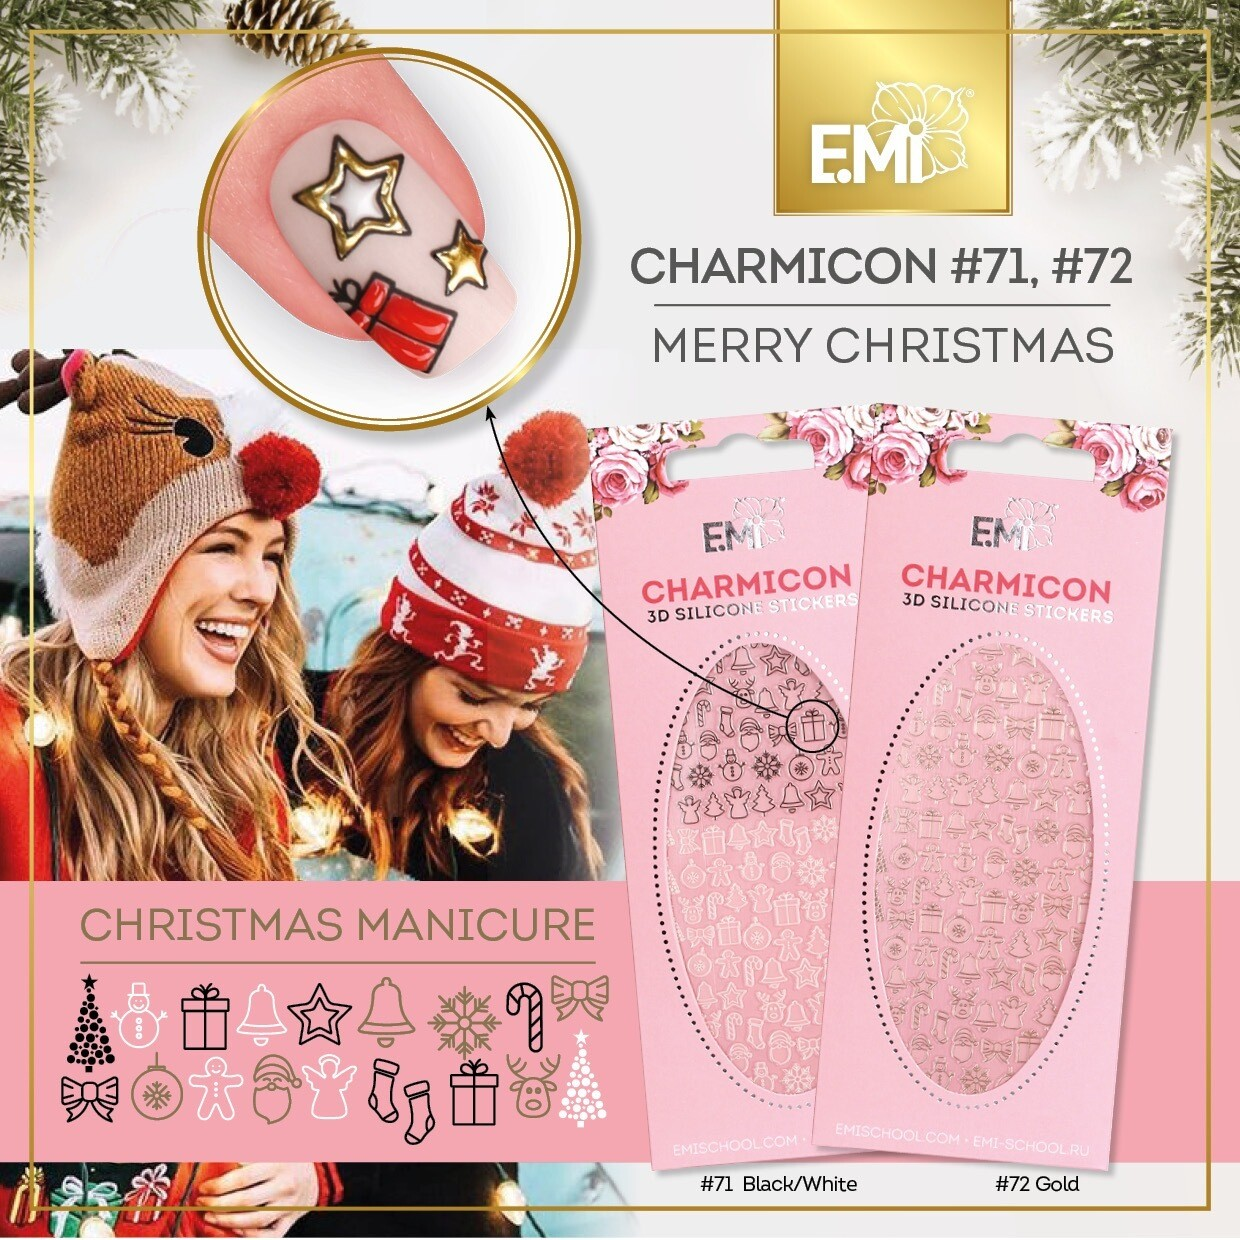 Charmicon Silicone Stickers #72 Merry Christmas GOLD